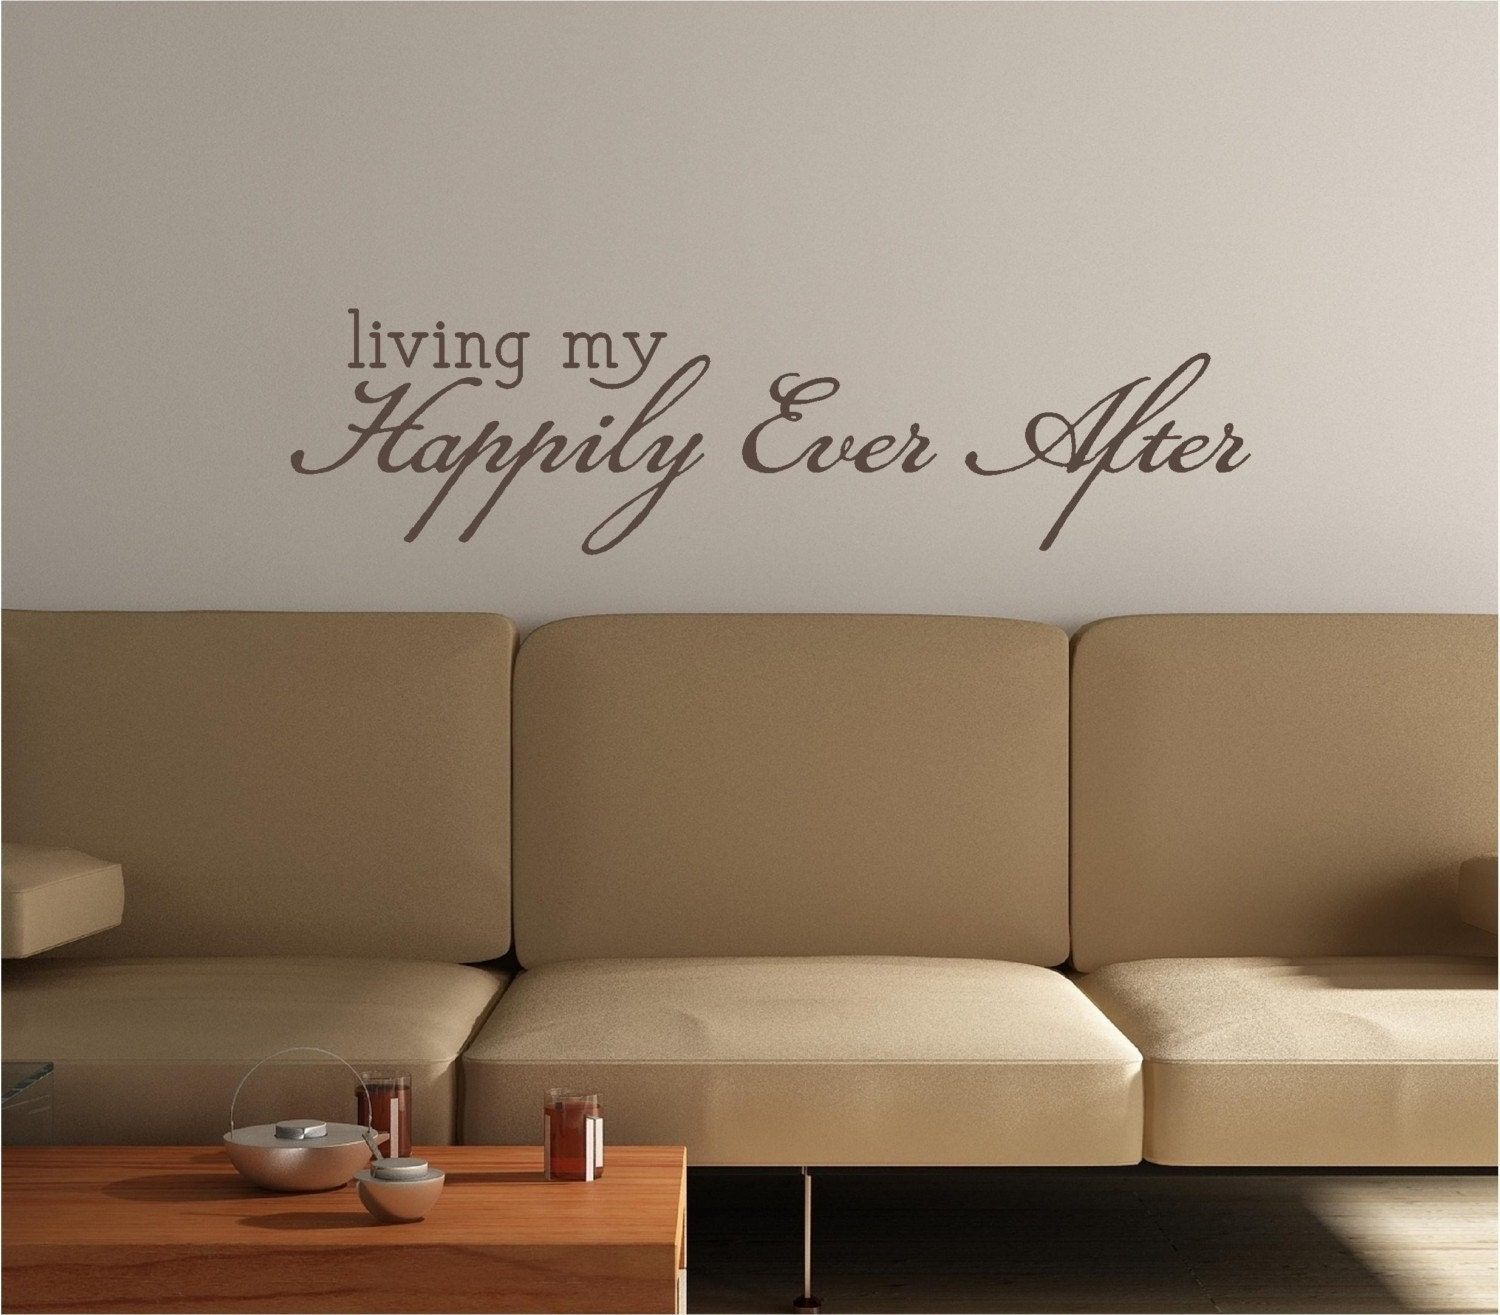 35x9 Living my Happily Ever After Love Door Decoration Vinyl Decor Wall Lettering Words Quotes Decals Art Custom Willow Creek Signs